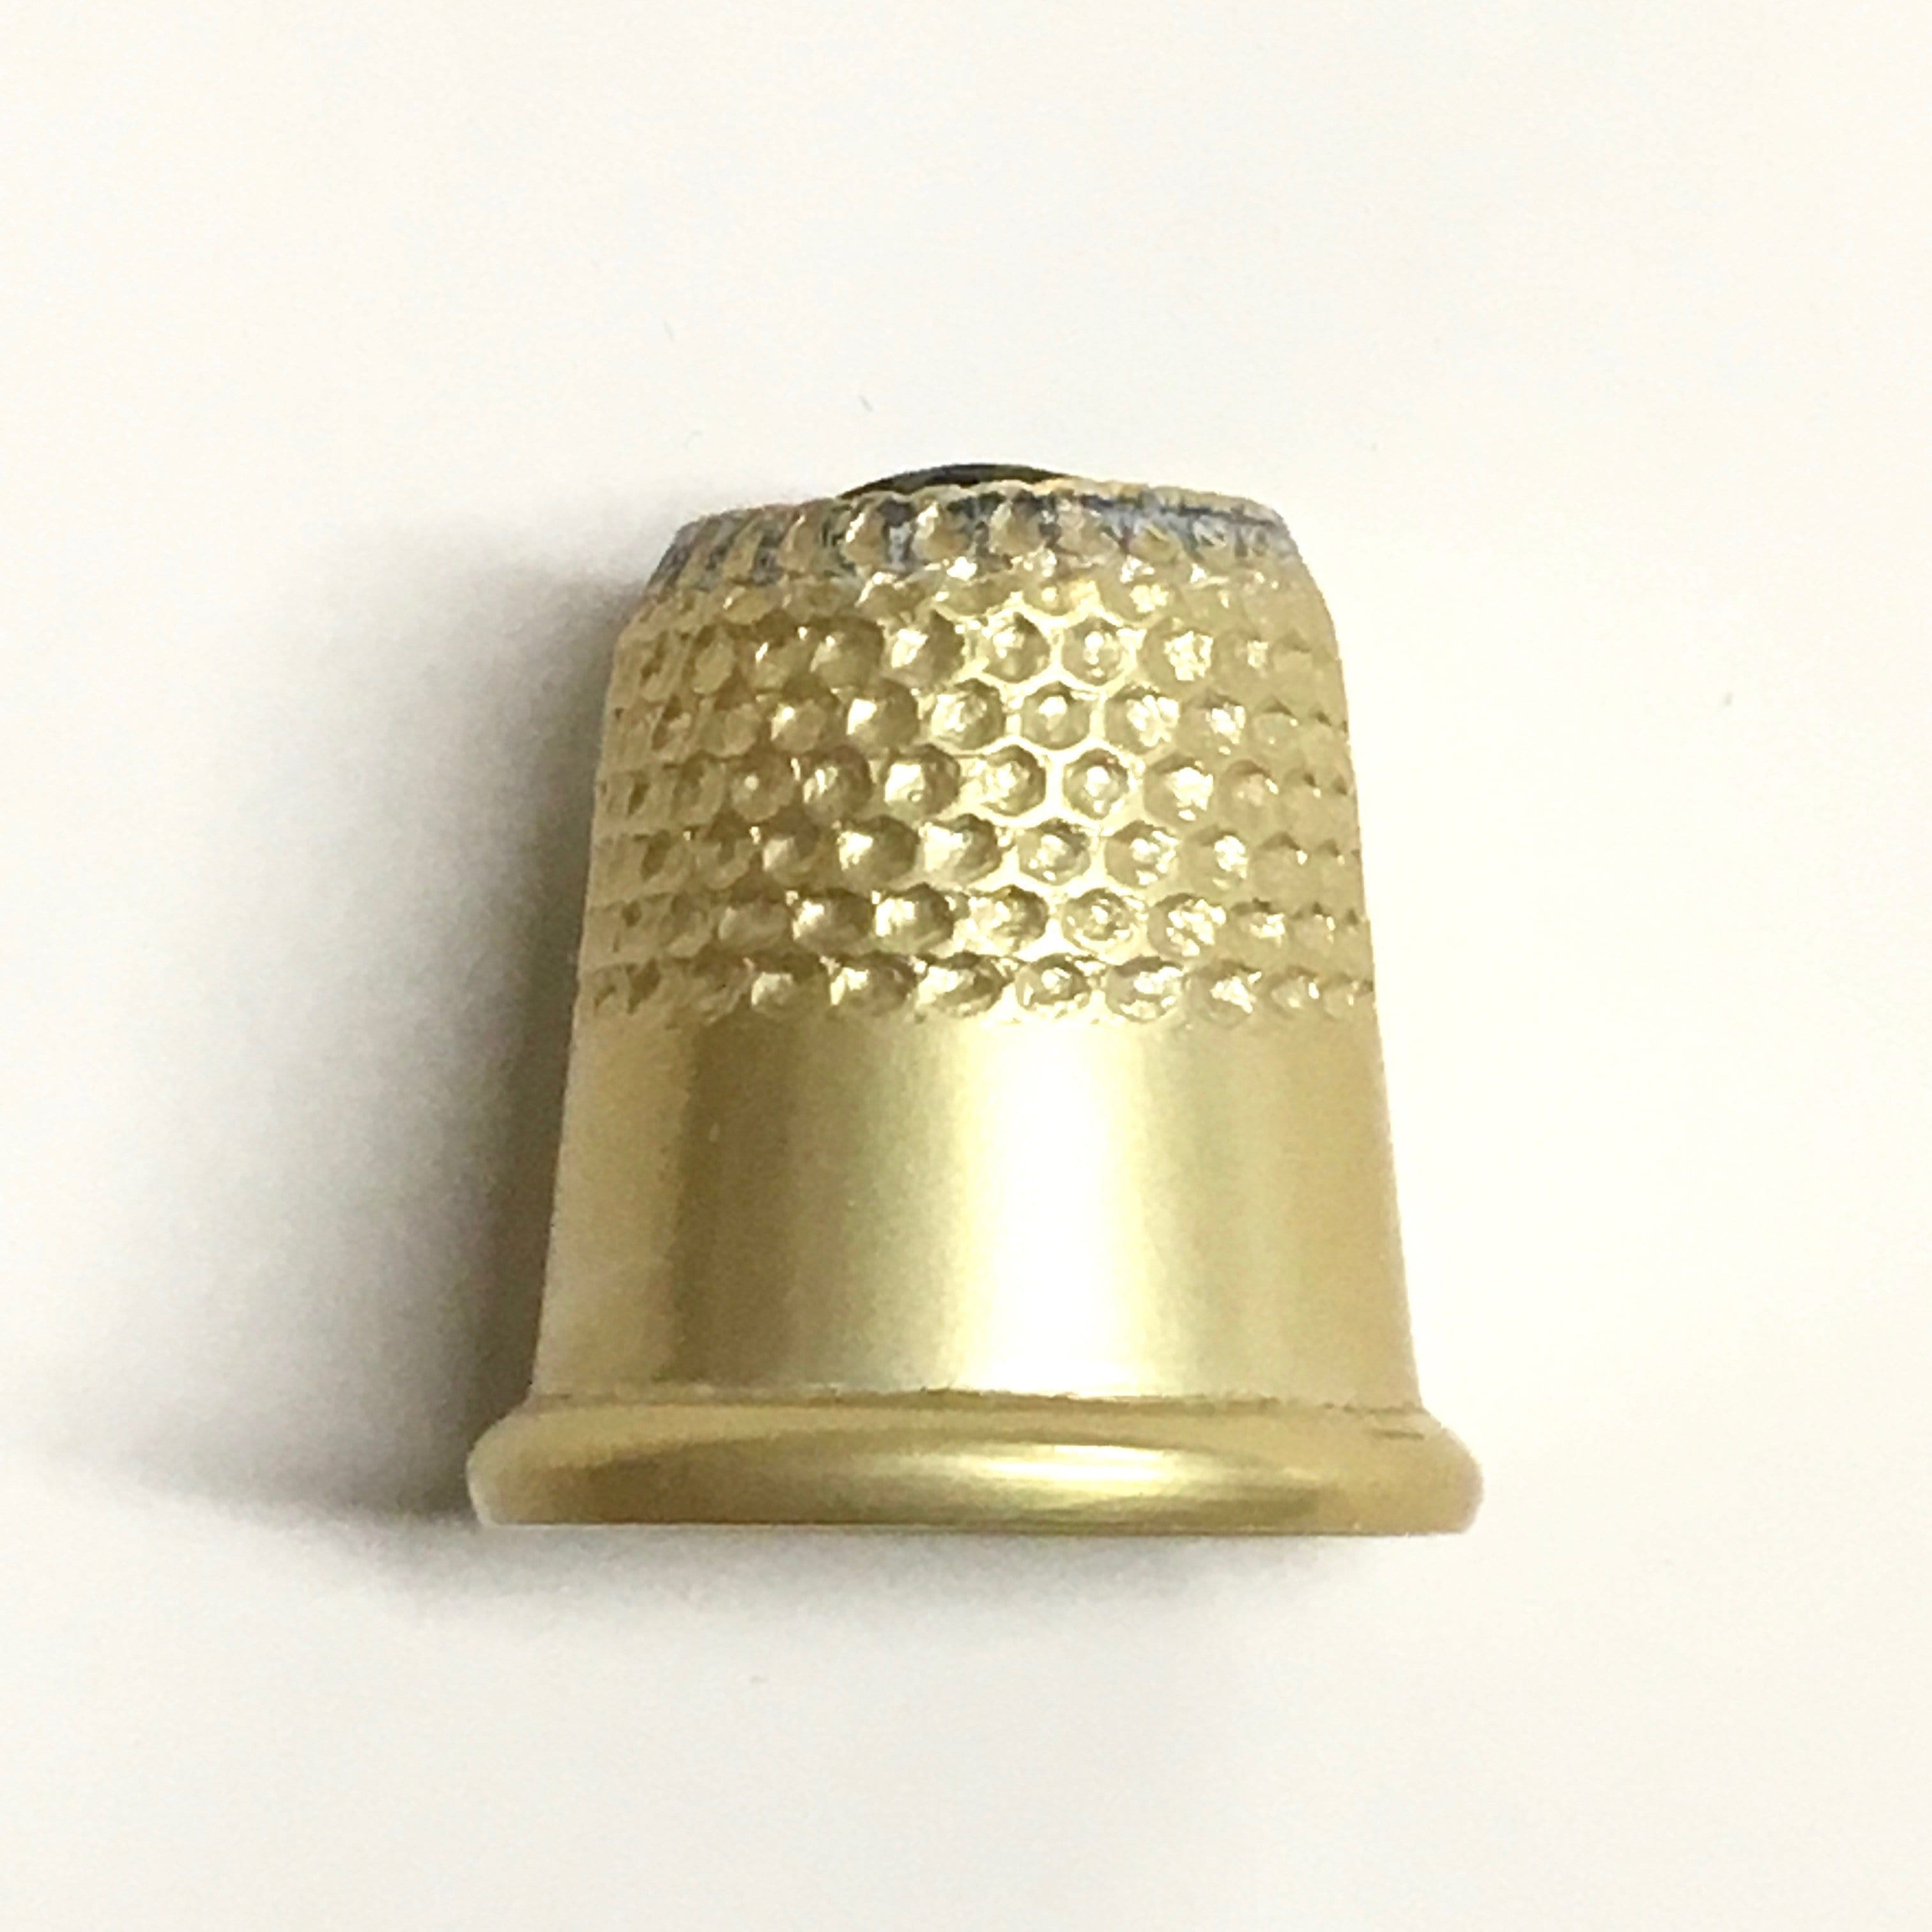 Magetop Thimble - Size Medium